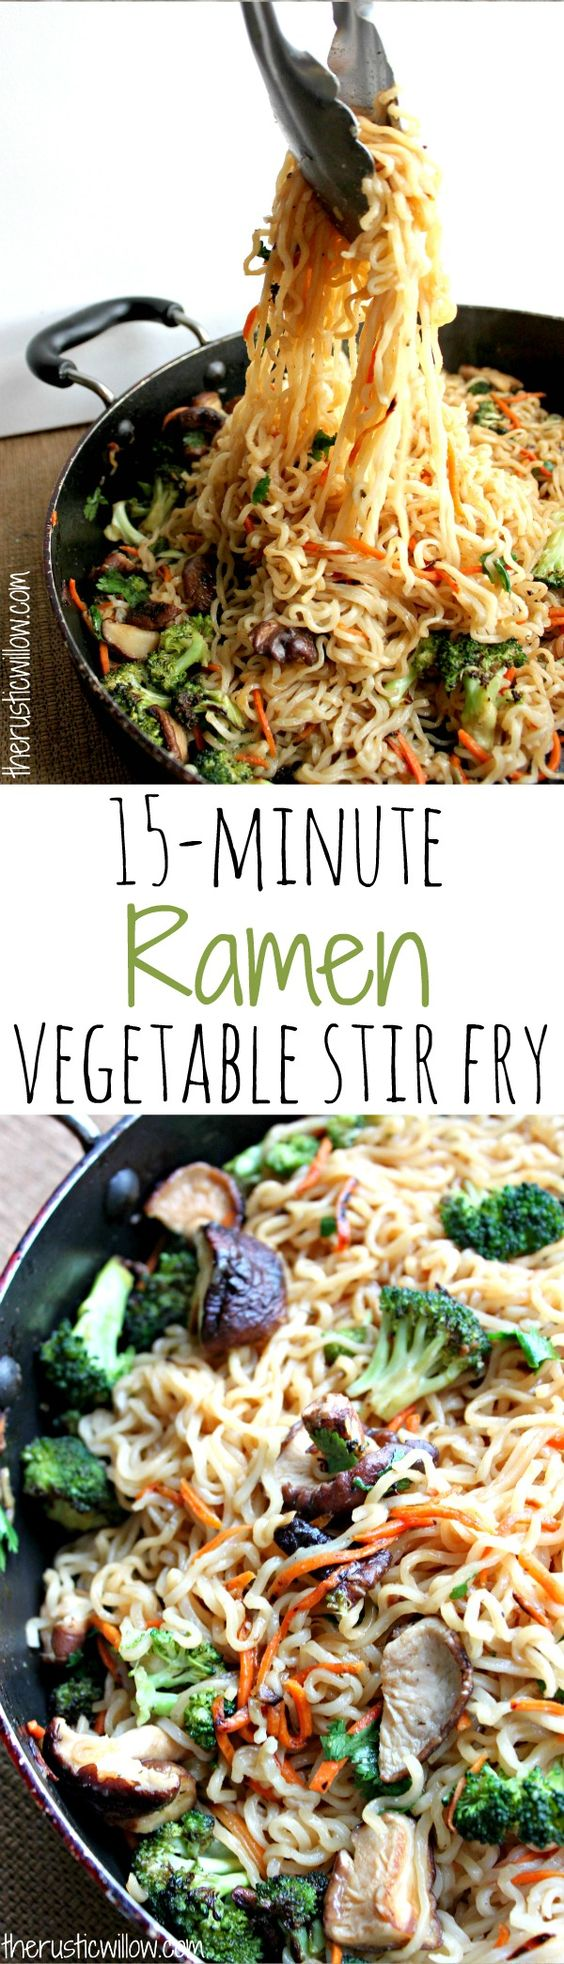 A 15-minute Ramen Vegetable Stir Fry recipe that's incredibly delicious and so easy! | therusticwillow.com